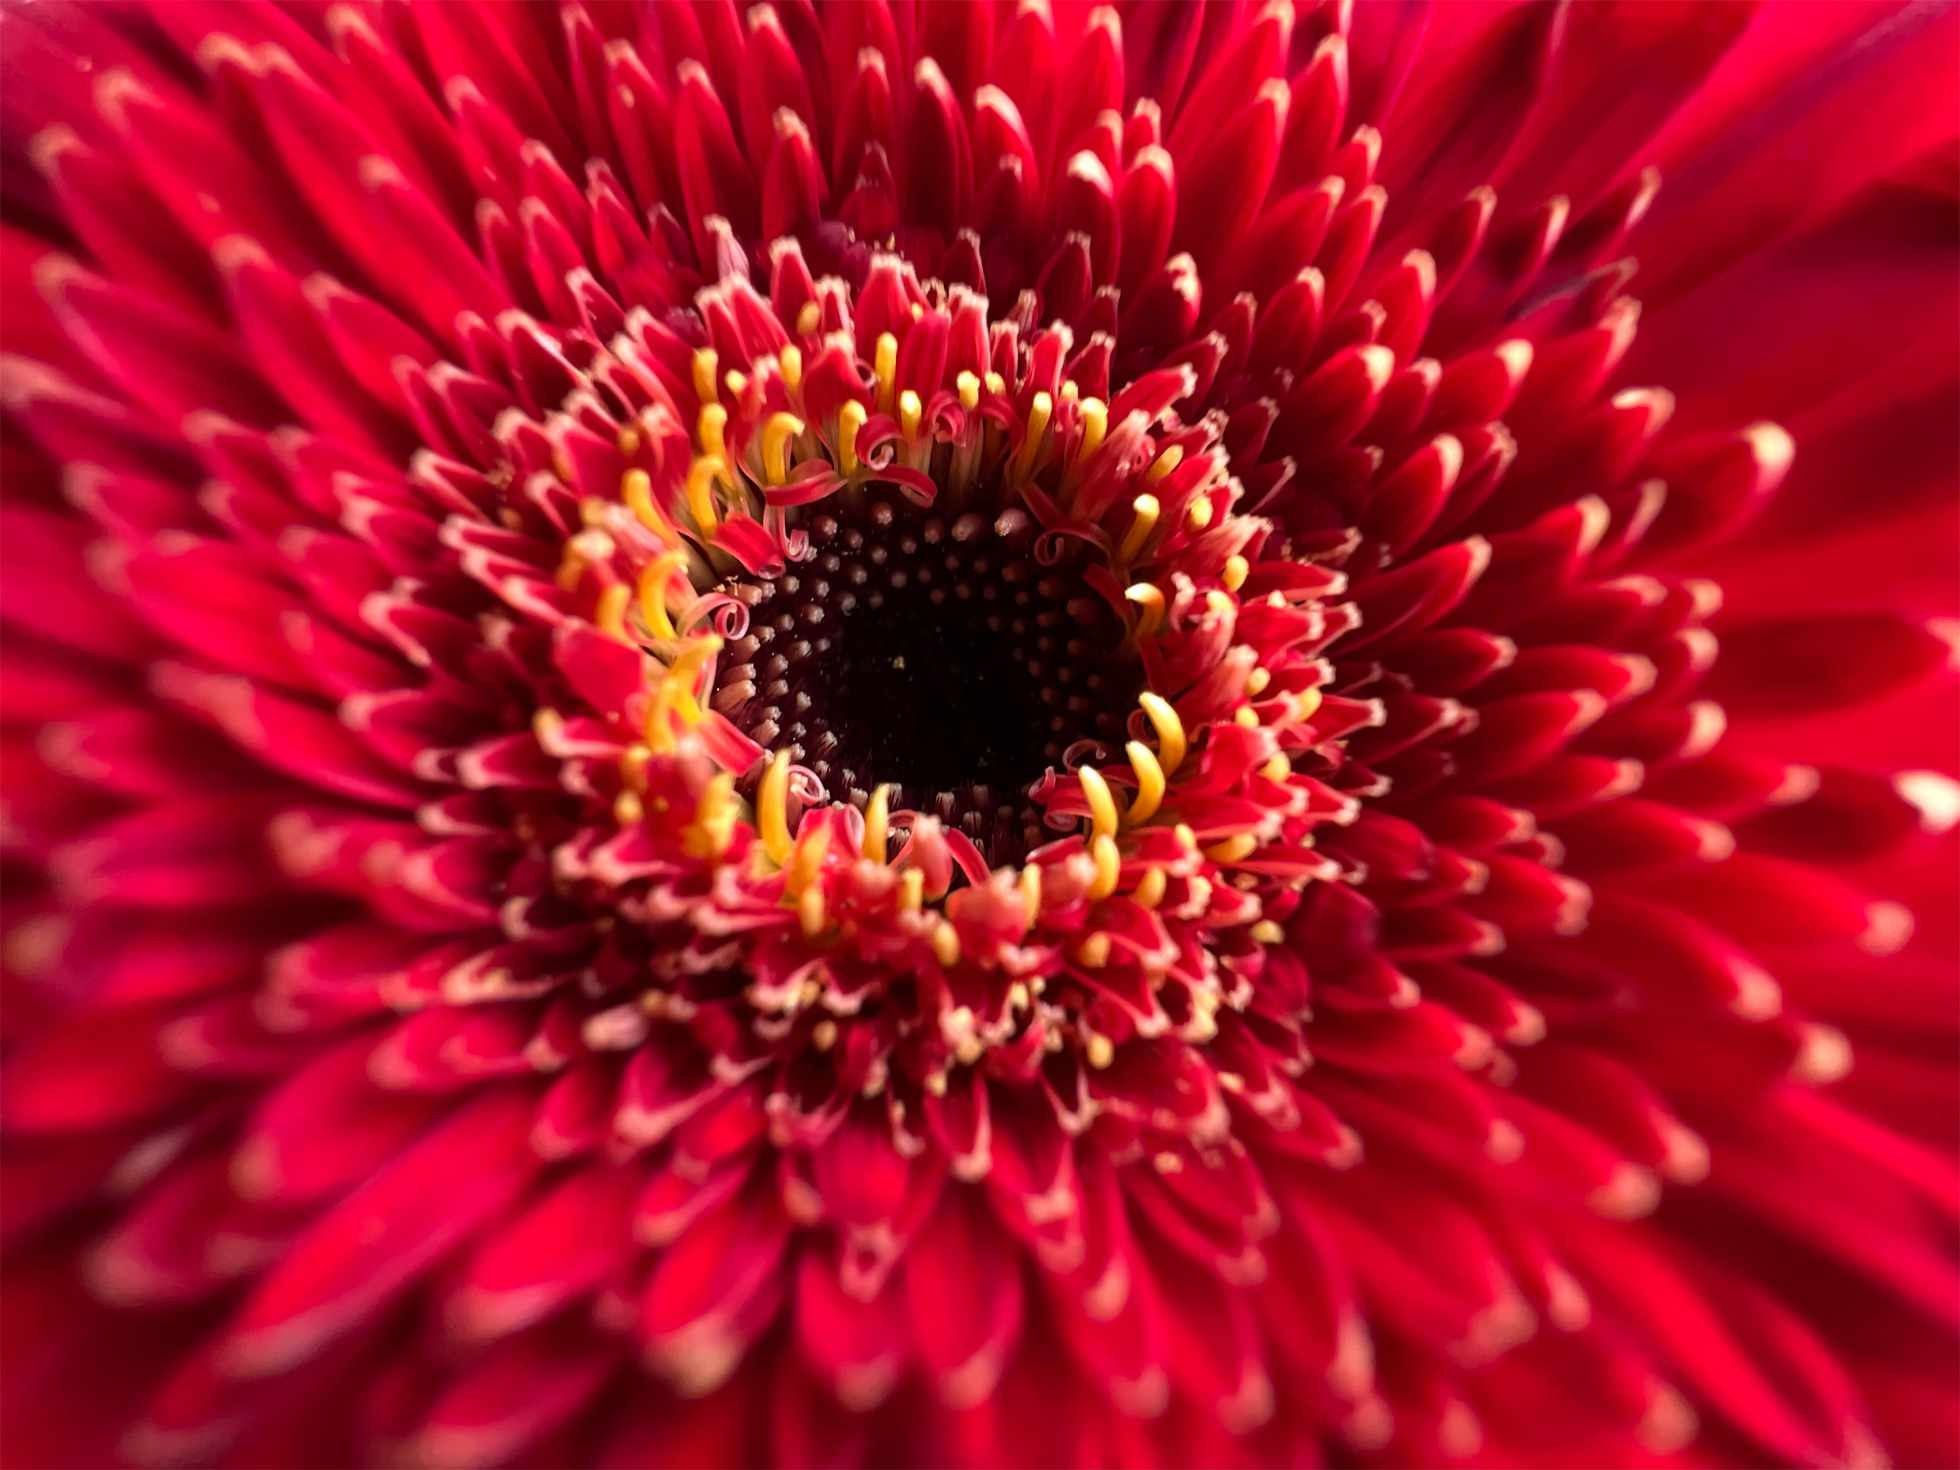 Photo of red flower taken with an iPhone 13 Pro